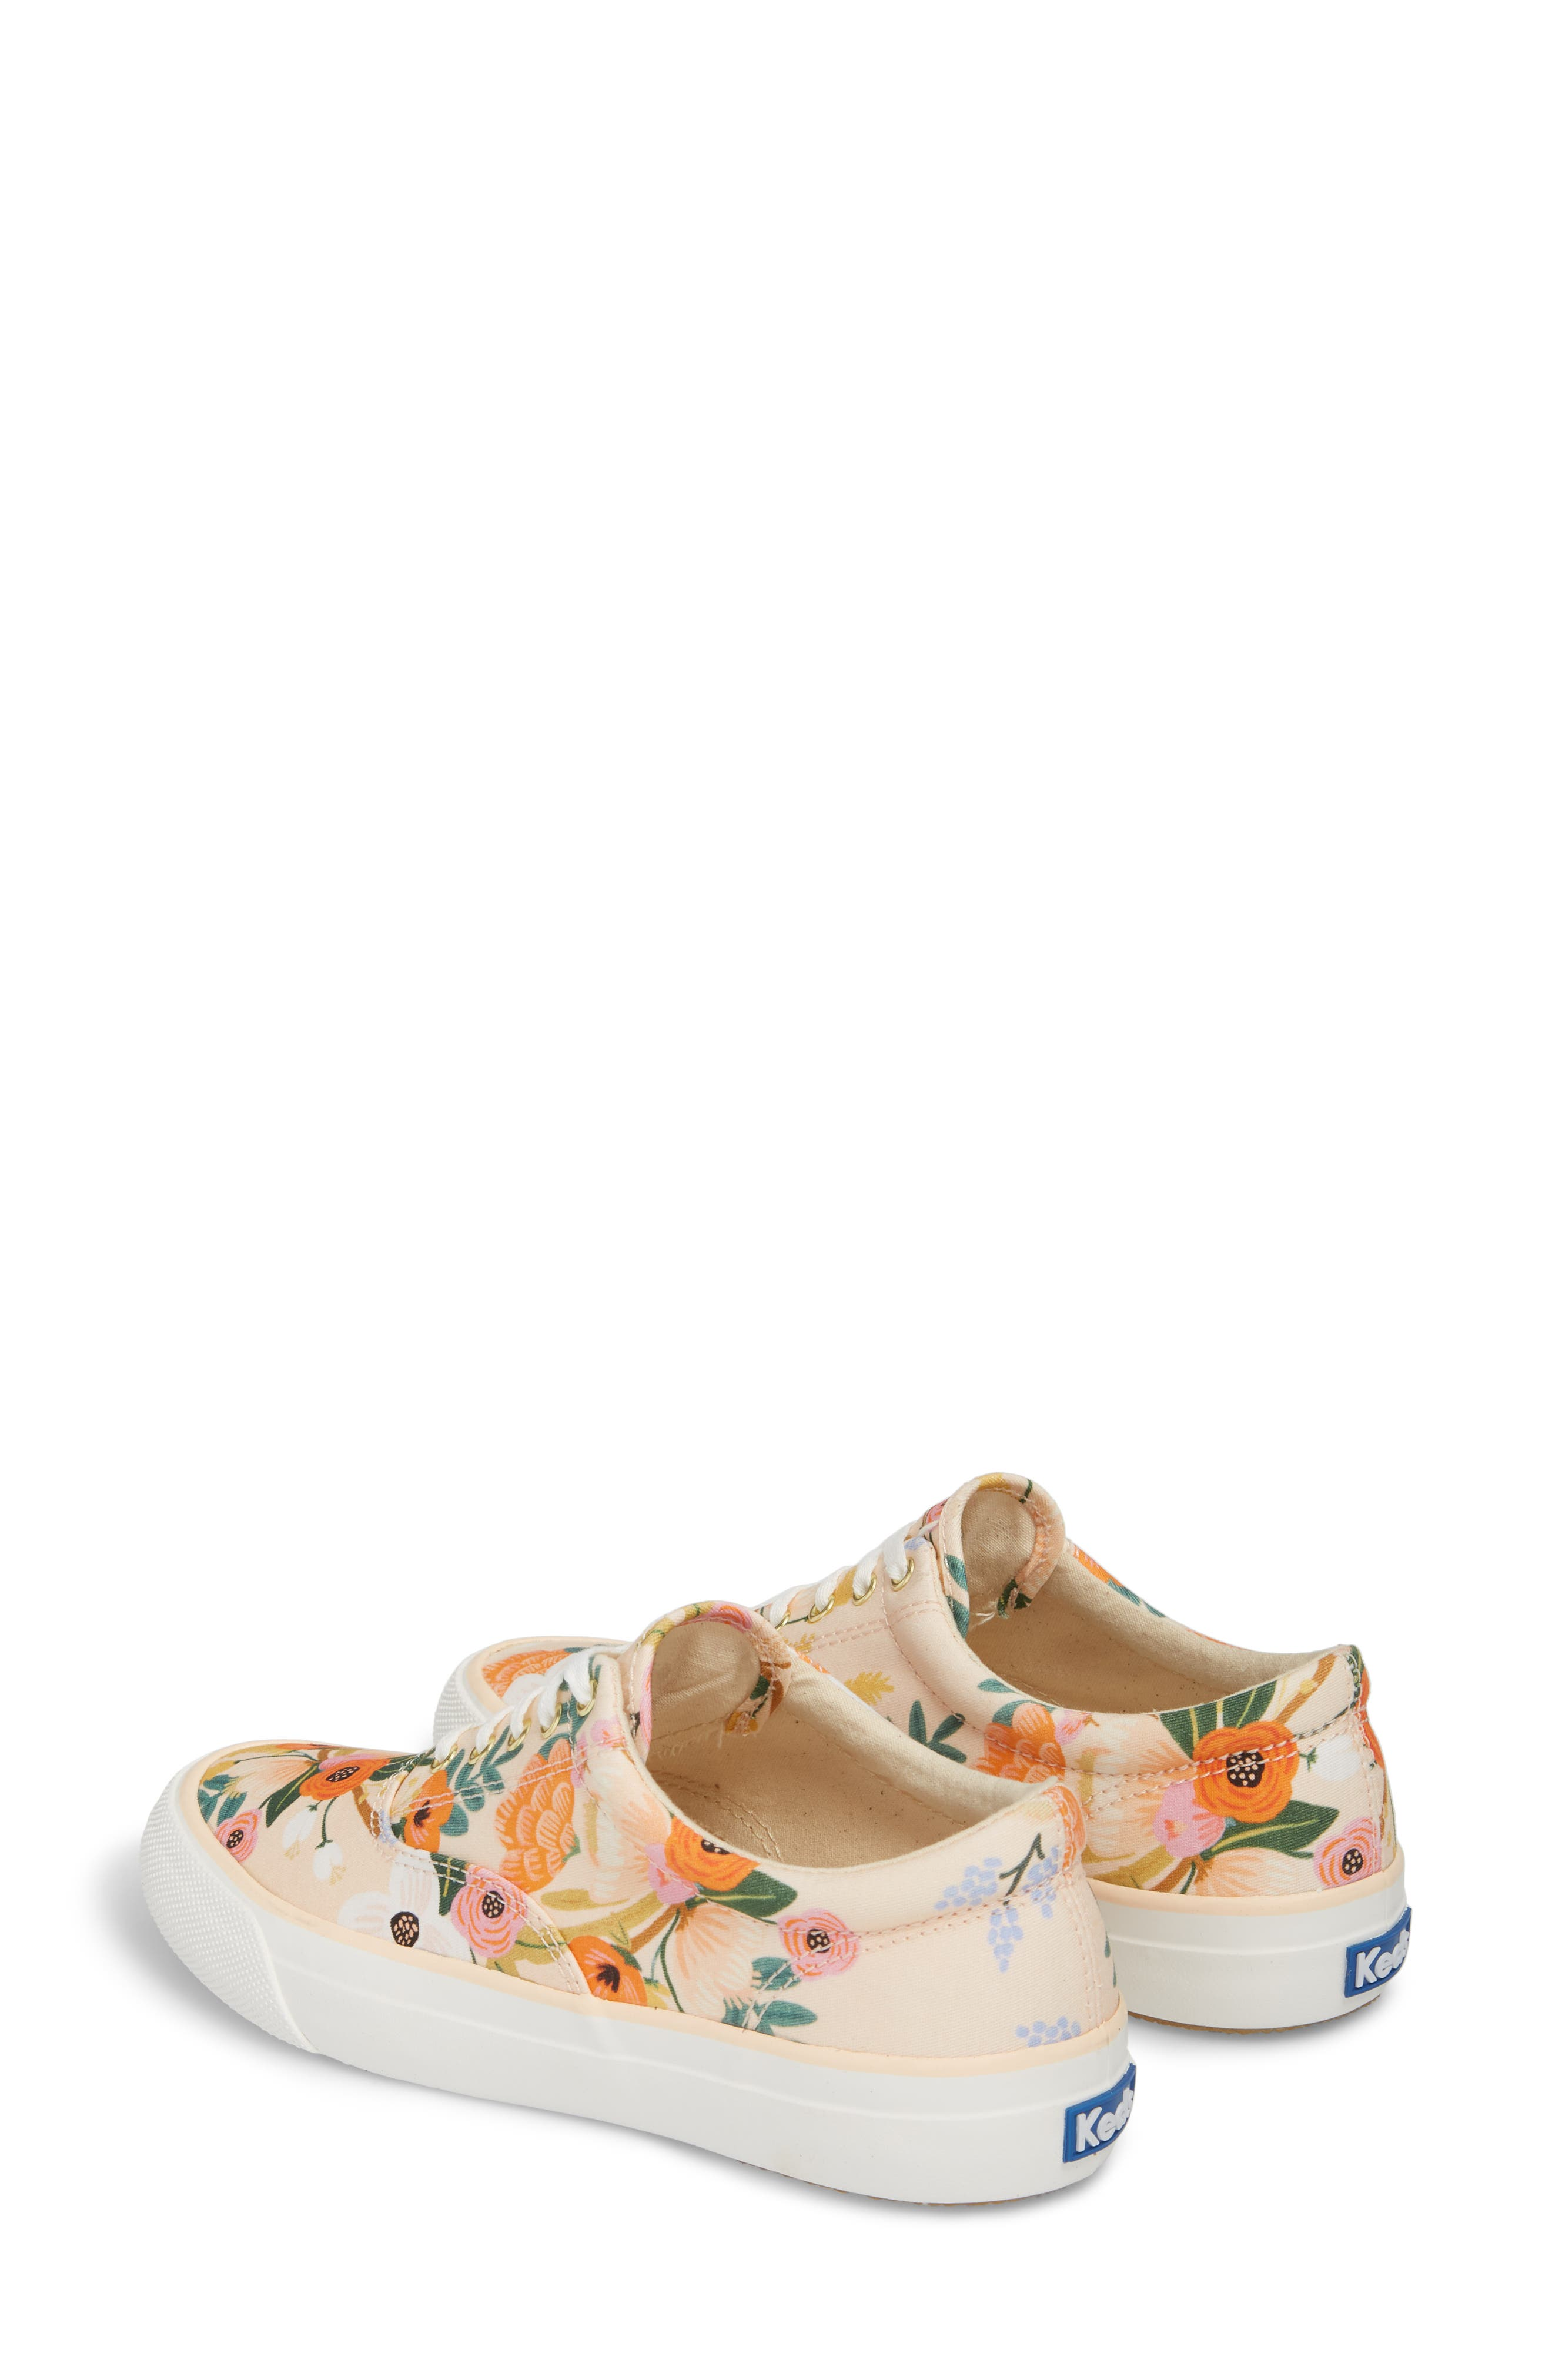 x Rifle Paper Co. Anchor Lively Floral Slip-On Sneaker,                             Alternate thumbnail 2, color,                             Pink